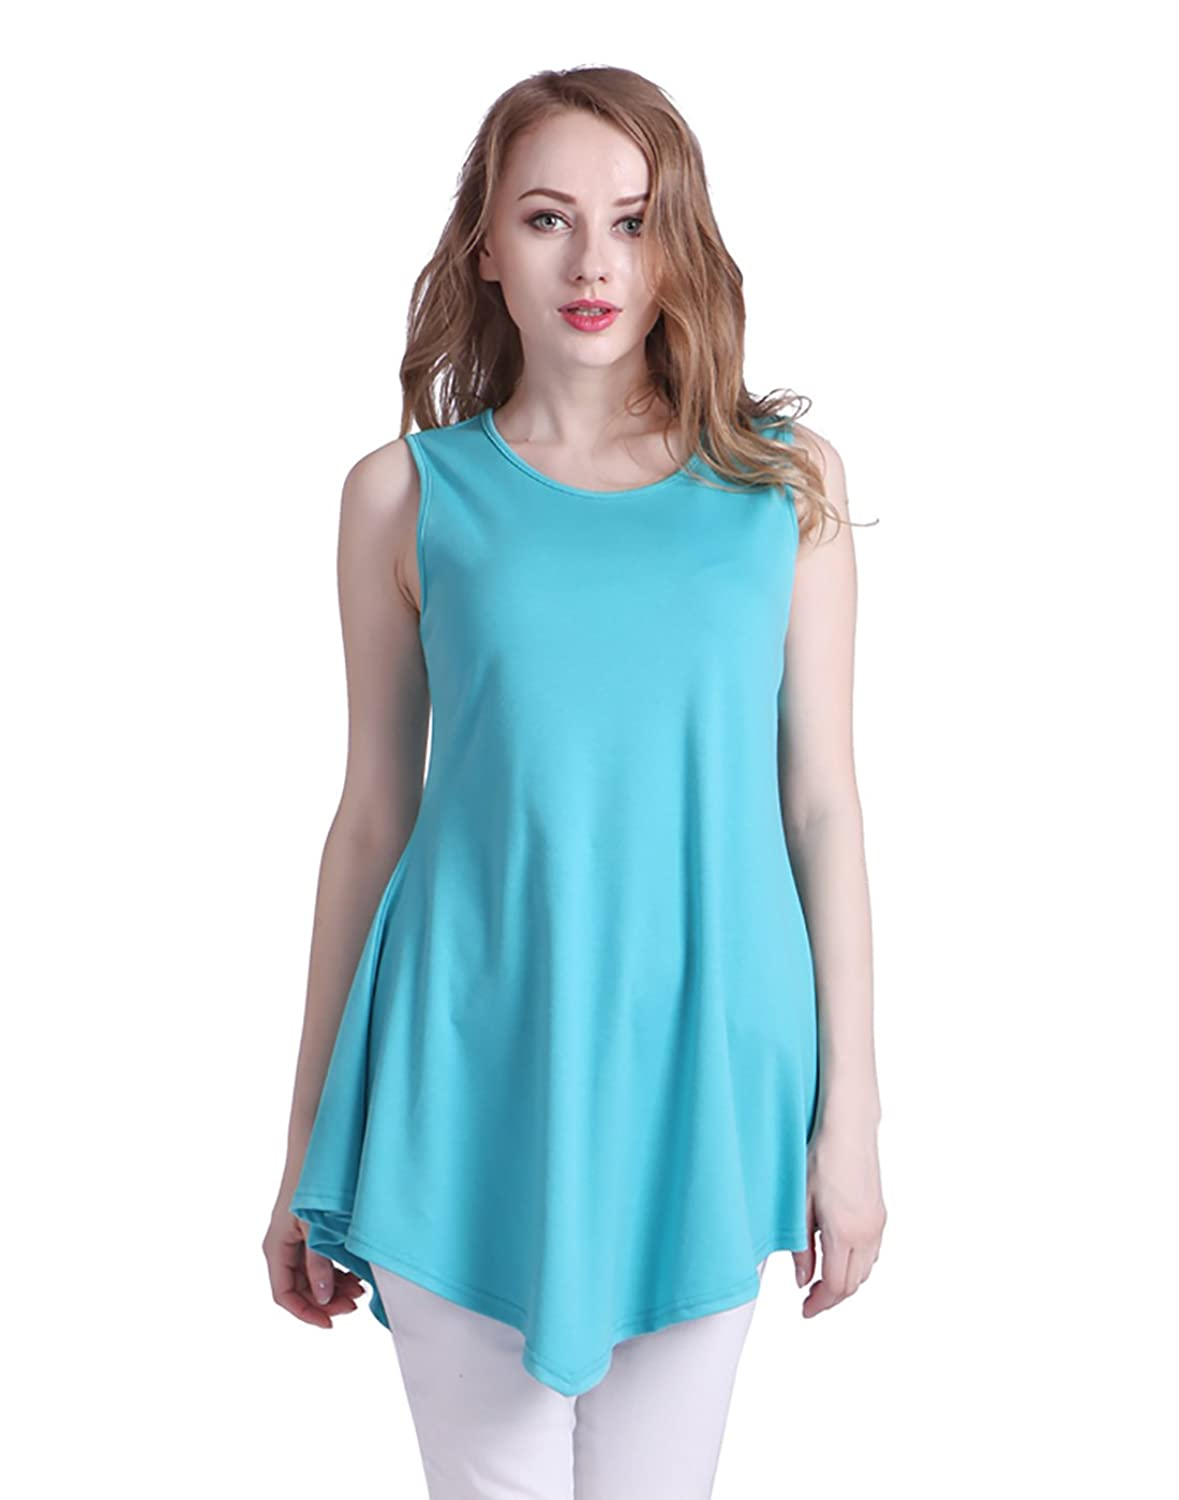 4f1198c1 ... based on your bust measurement: (S) 32-33 inches (M) 34-35 inches (L)  36-38 inches (XL) 39-41 inches (XXL) 42-43 inches. Soft, casual tunic tank  top ...